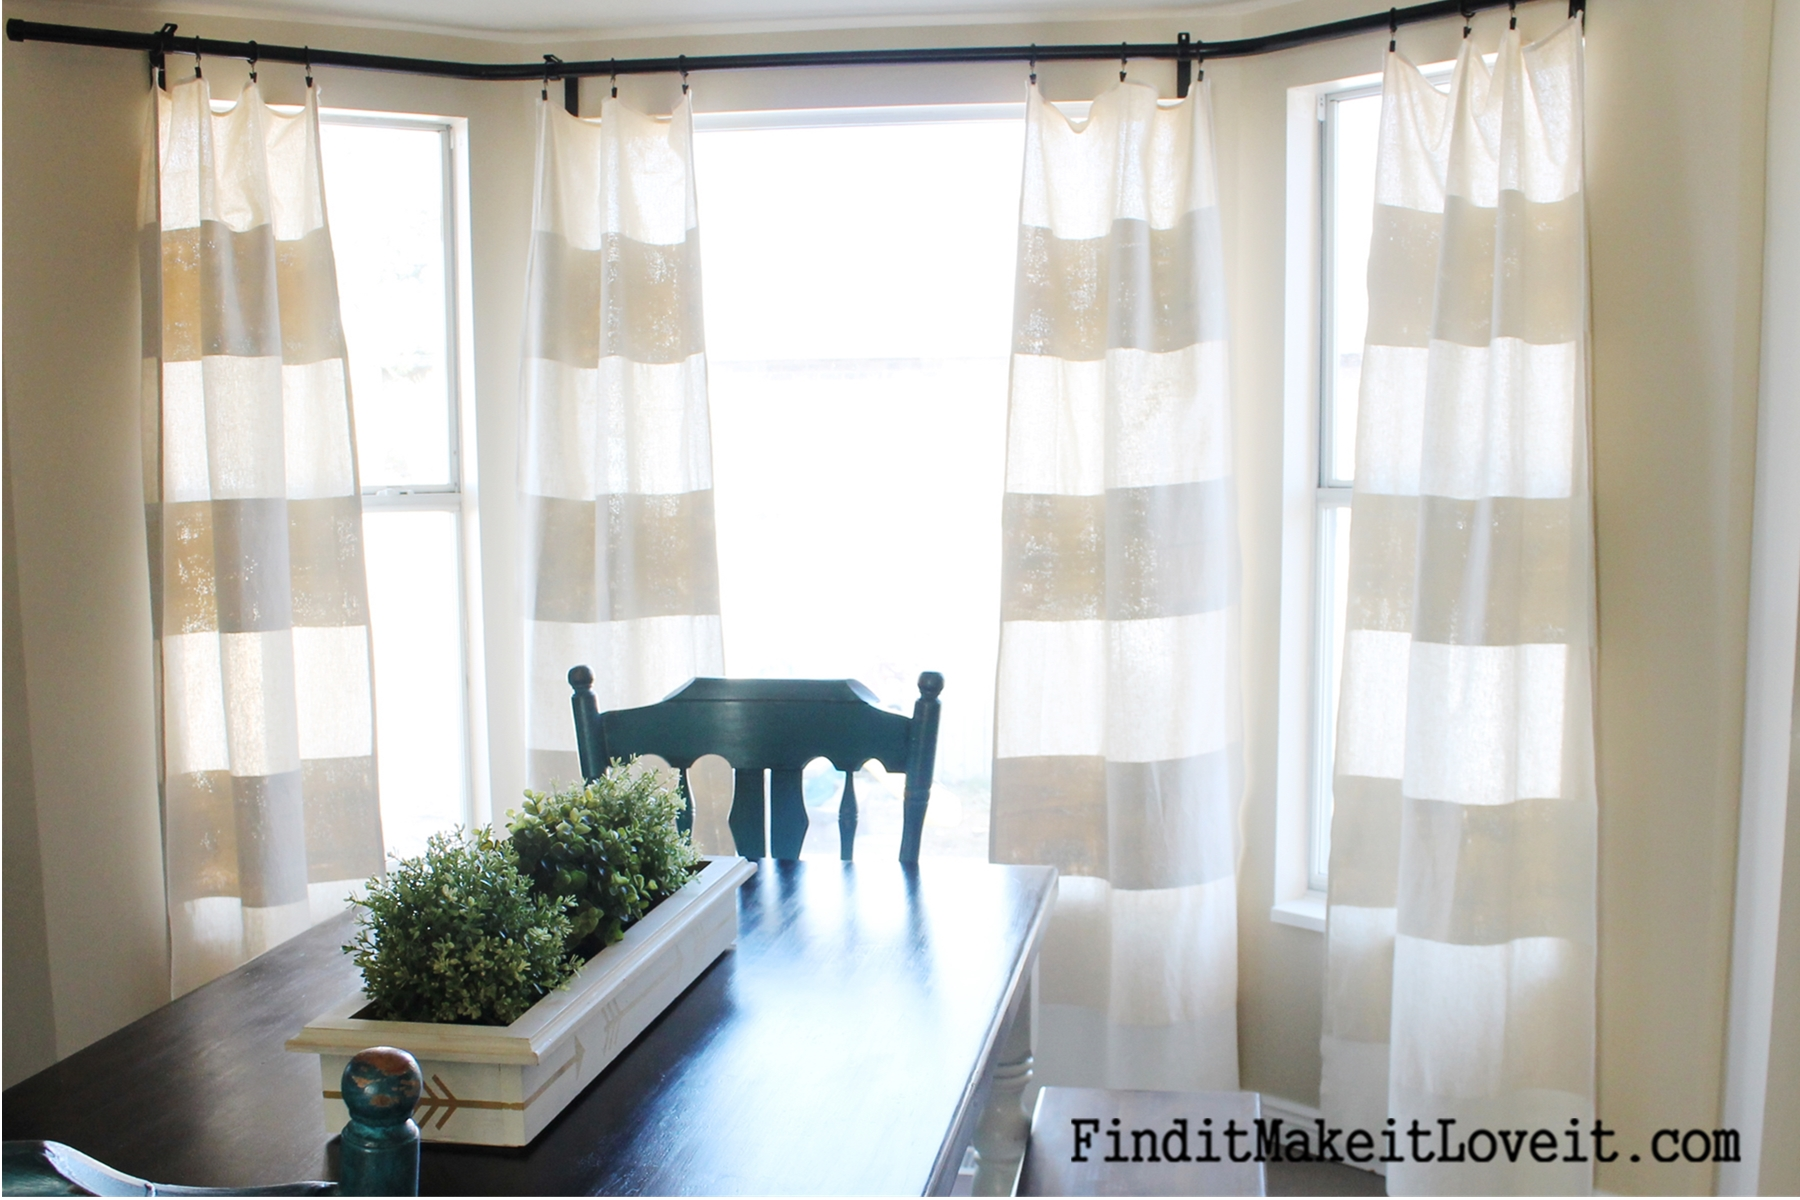 Well-liked DIY Painted Drop Cloth Curtains - Find it, Make it, Love it TZ13